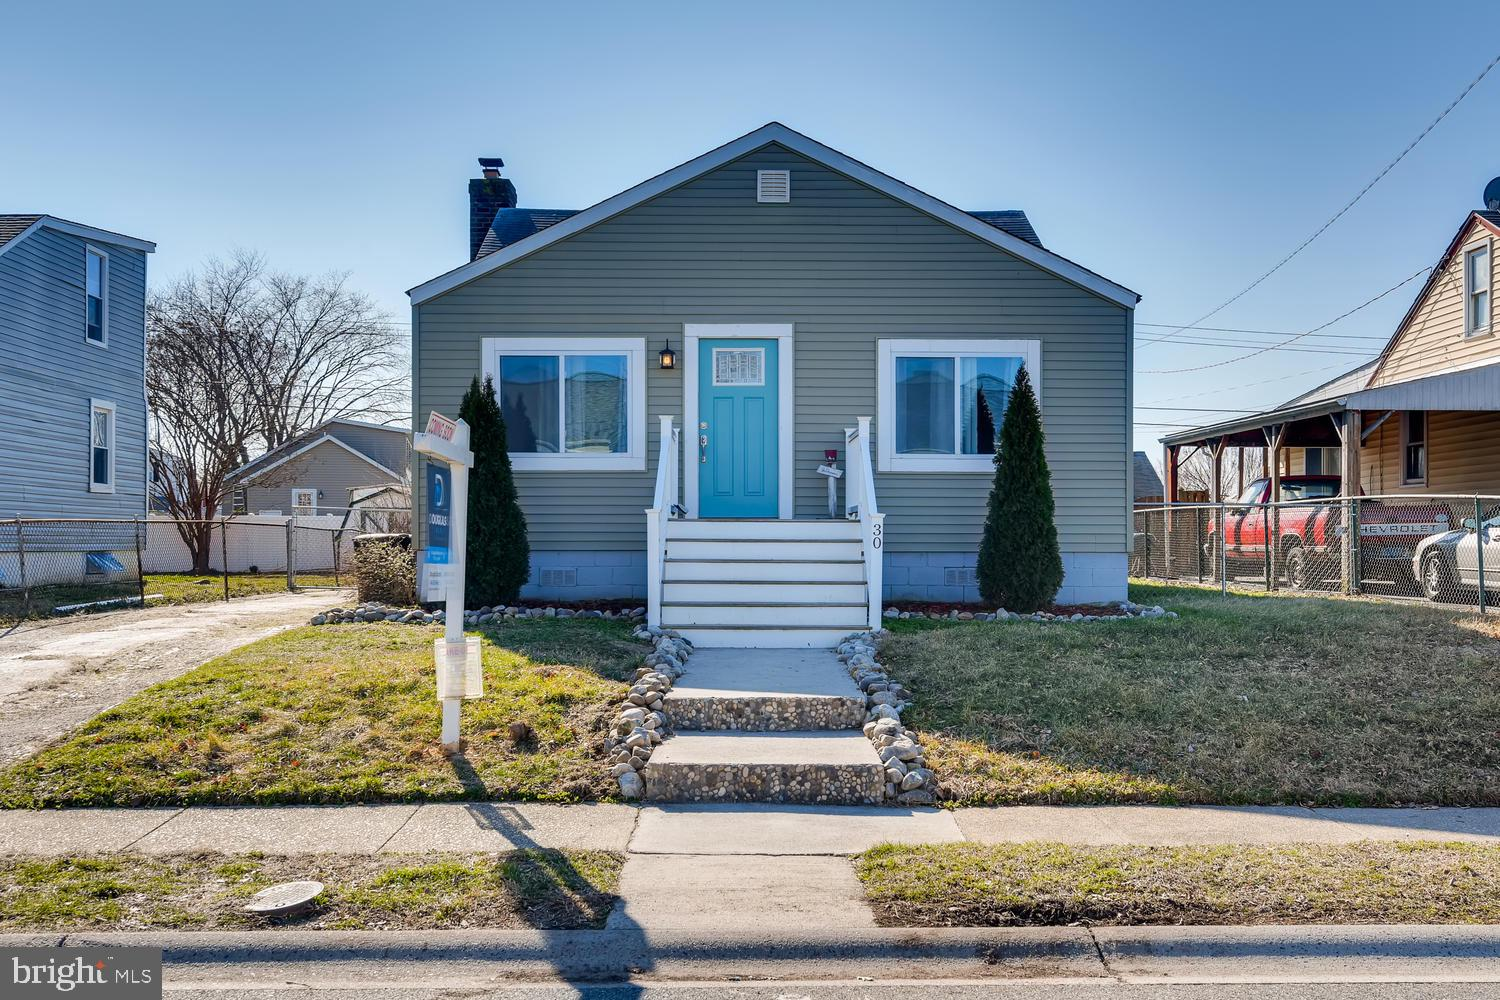 This lovely well maintained home shows pride of homeownership. It has everything you've ever want in